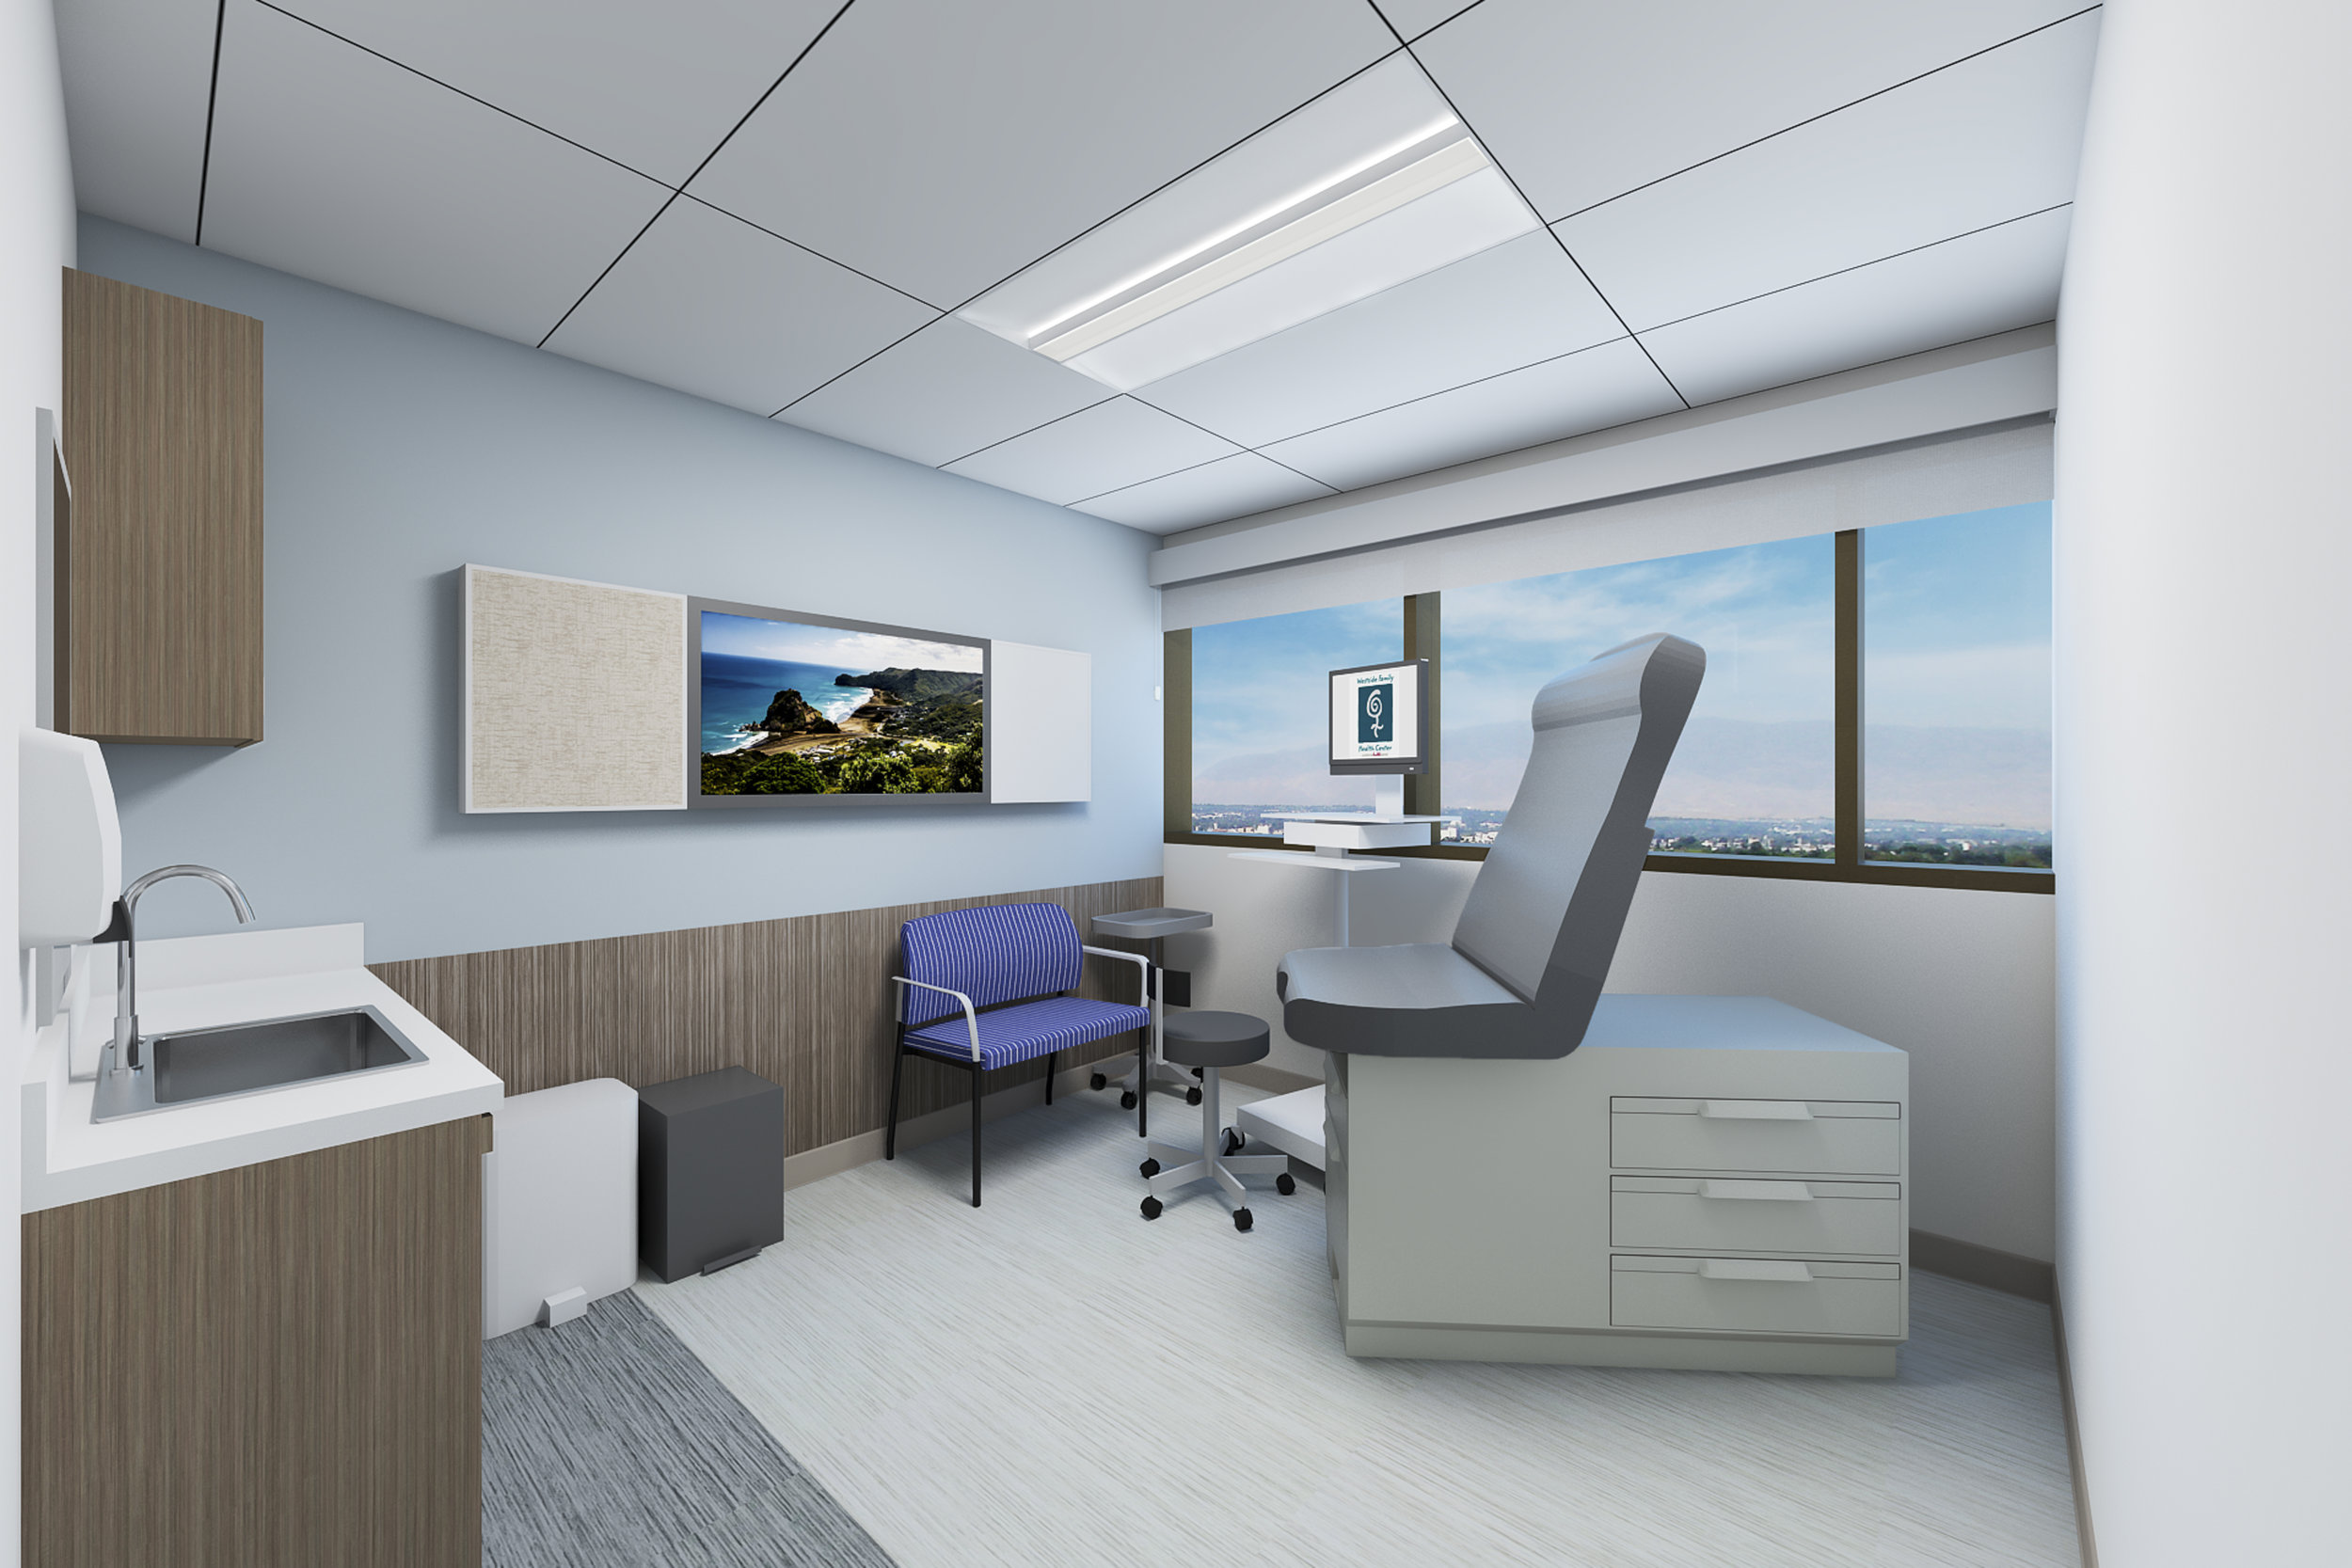 Typical Exam Room-121318.jpg